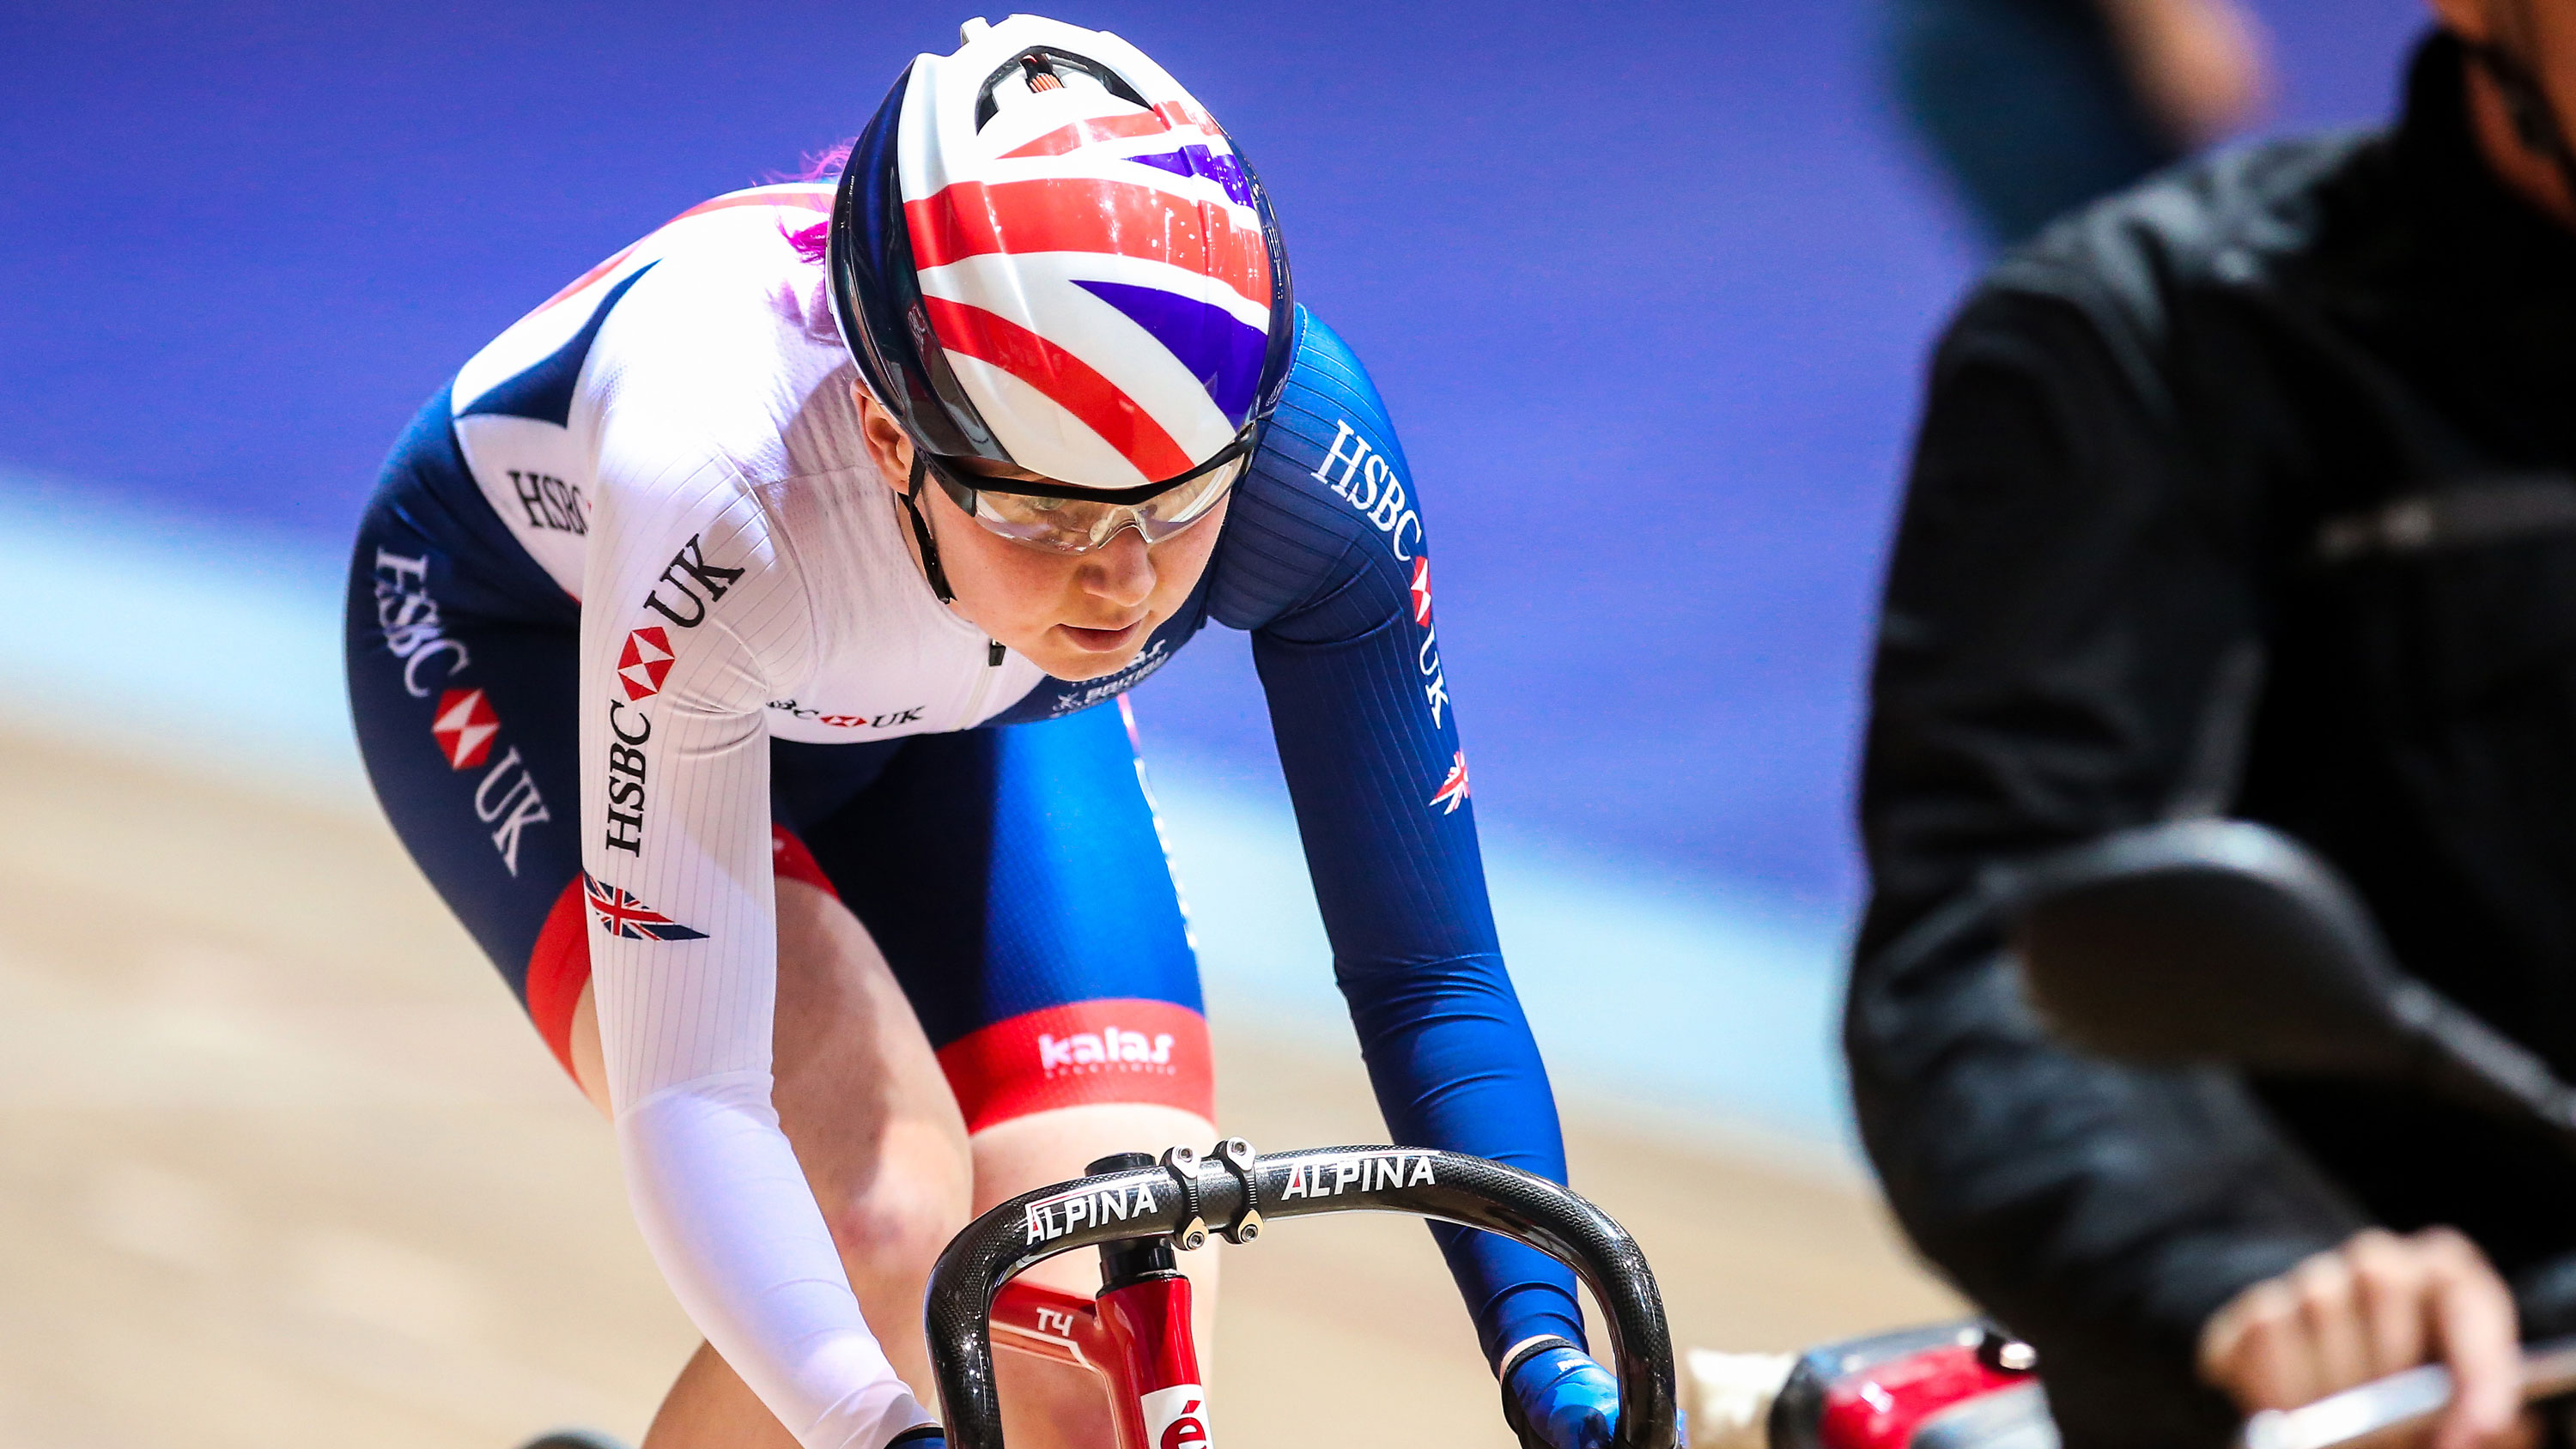 San Diegan among team that wins gold at track cycling worlds